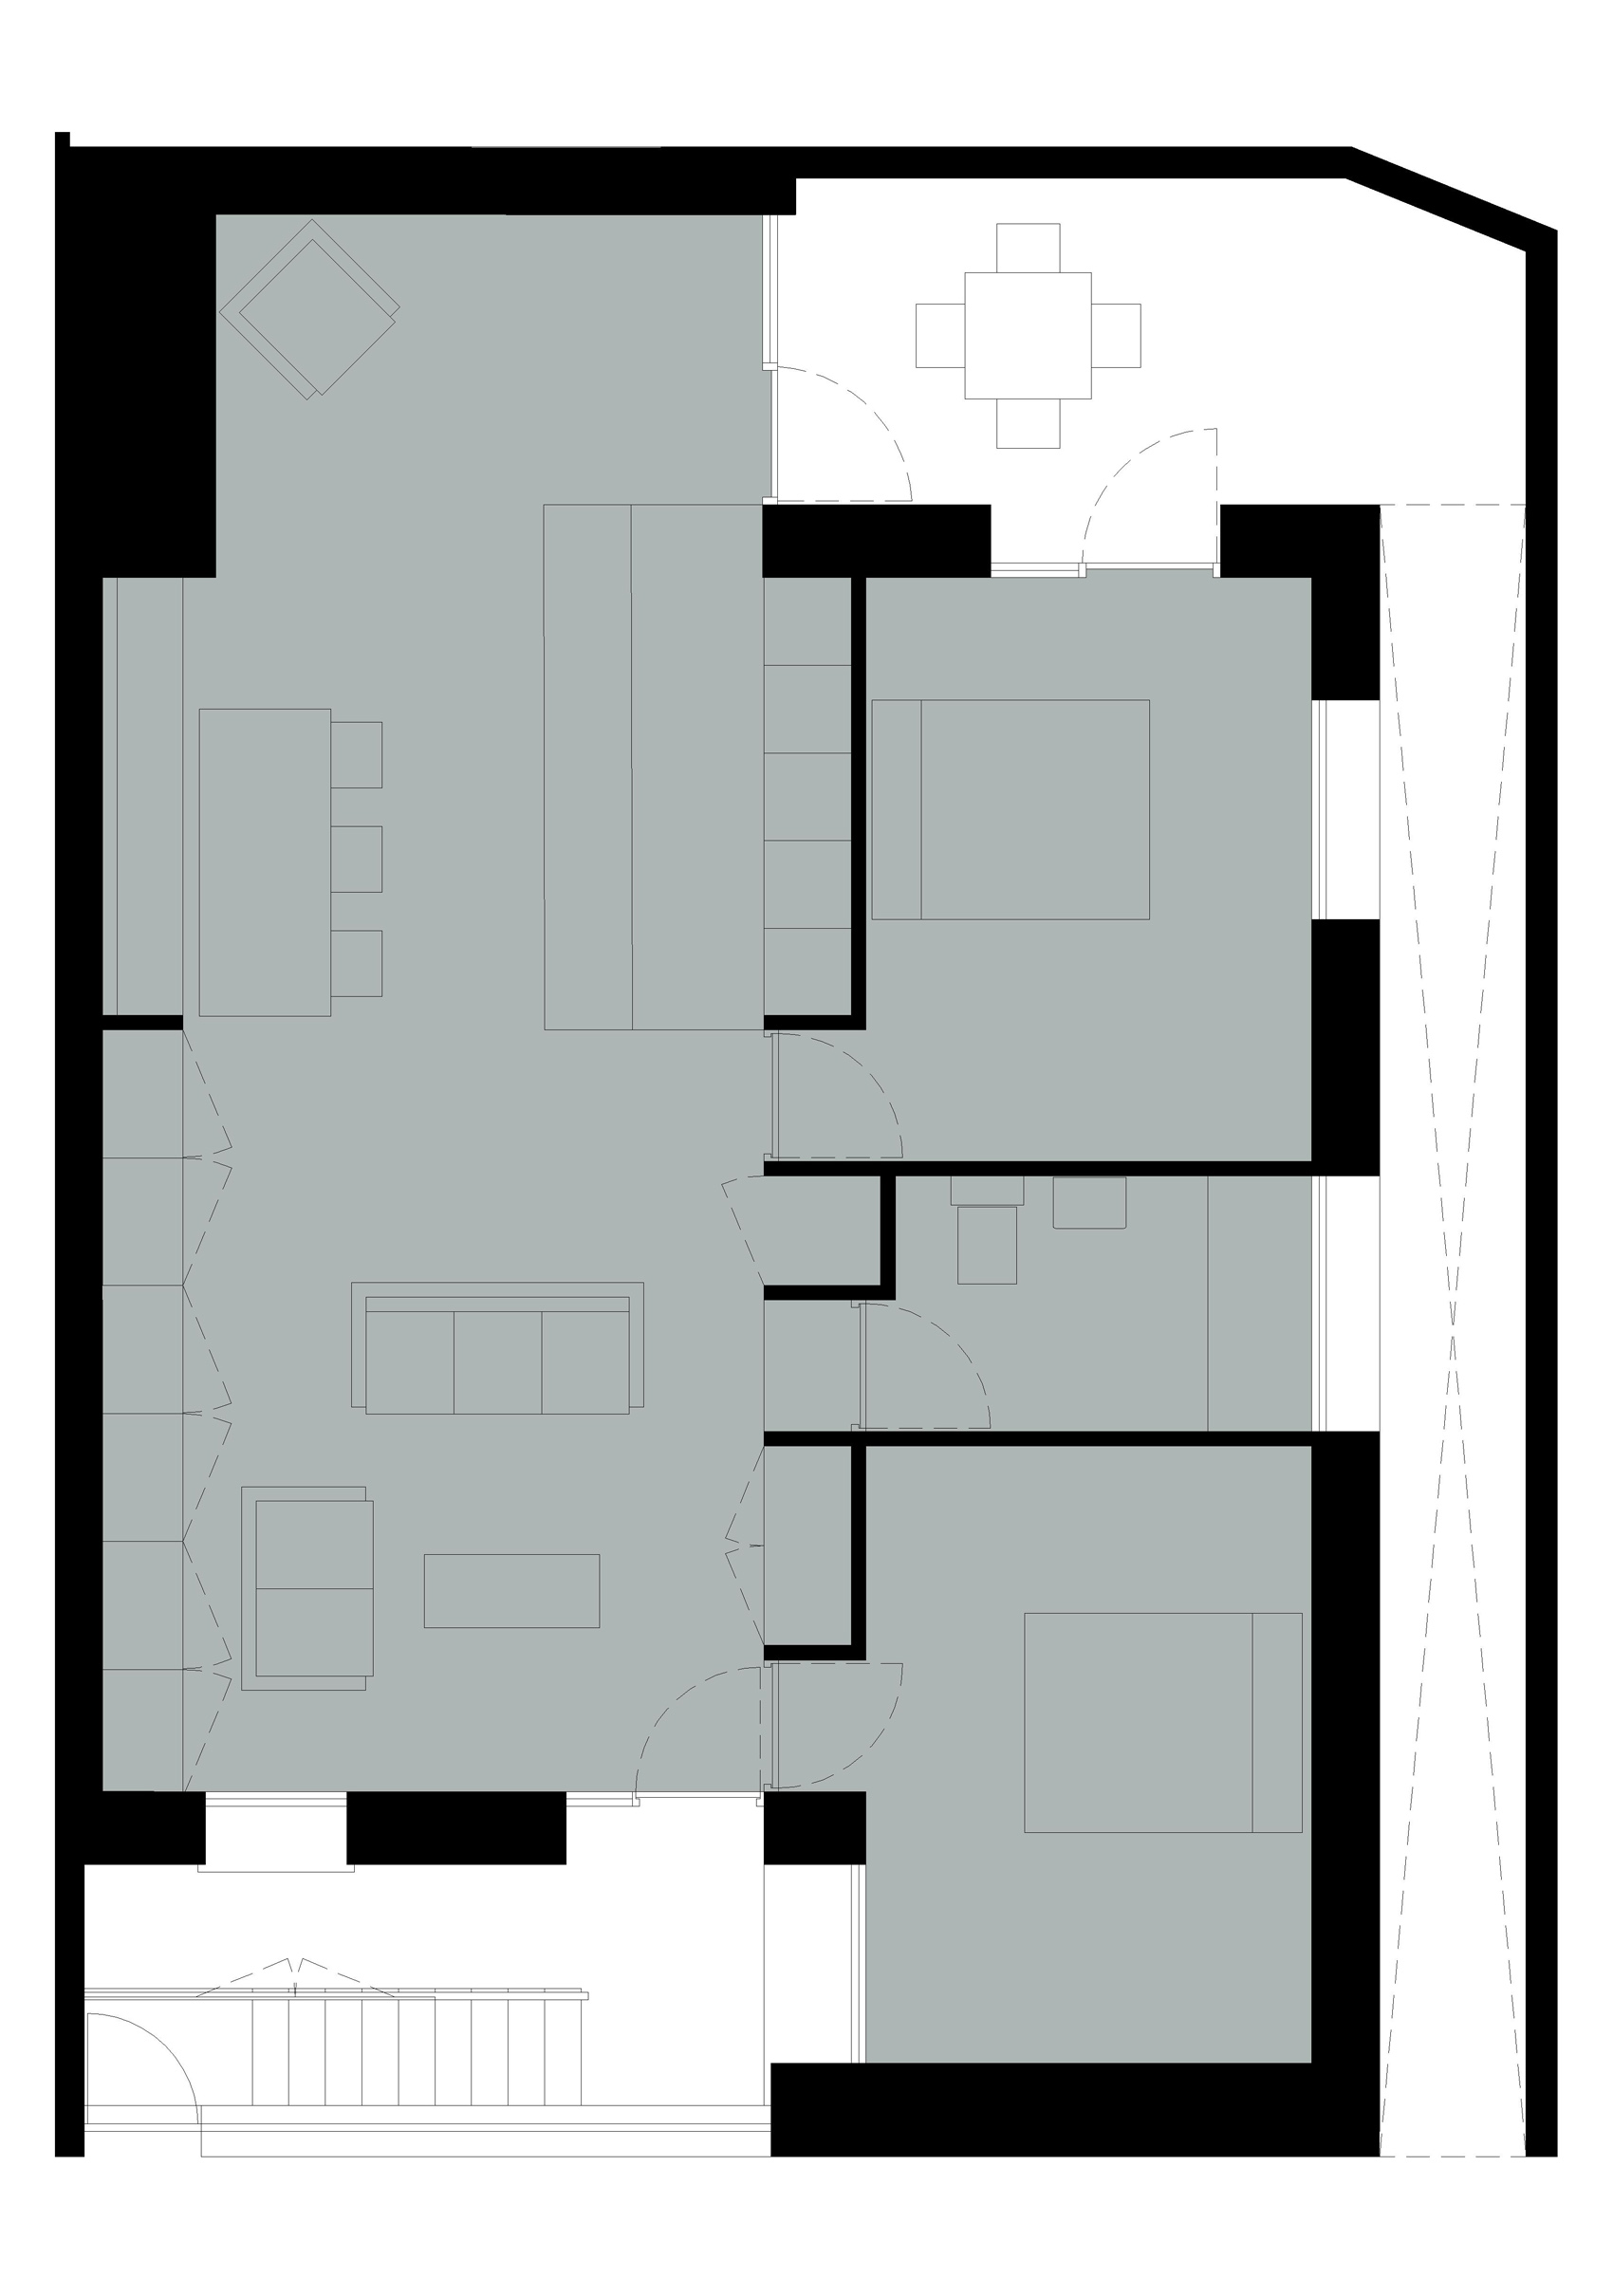 E0728-8-RICHMOND-AVENUE-DESIGN-FLOOR PLAN.jpg